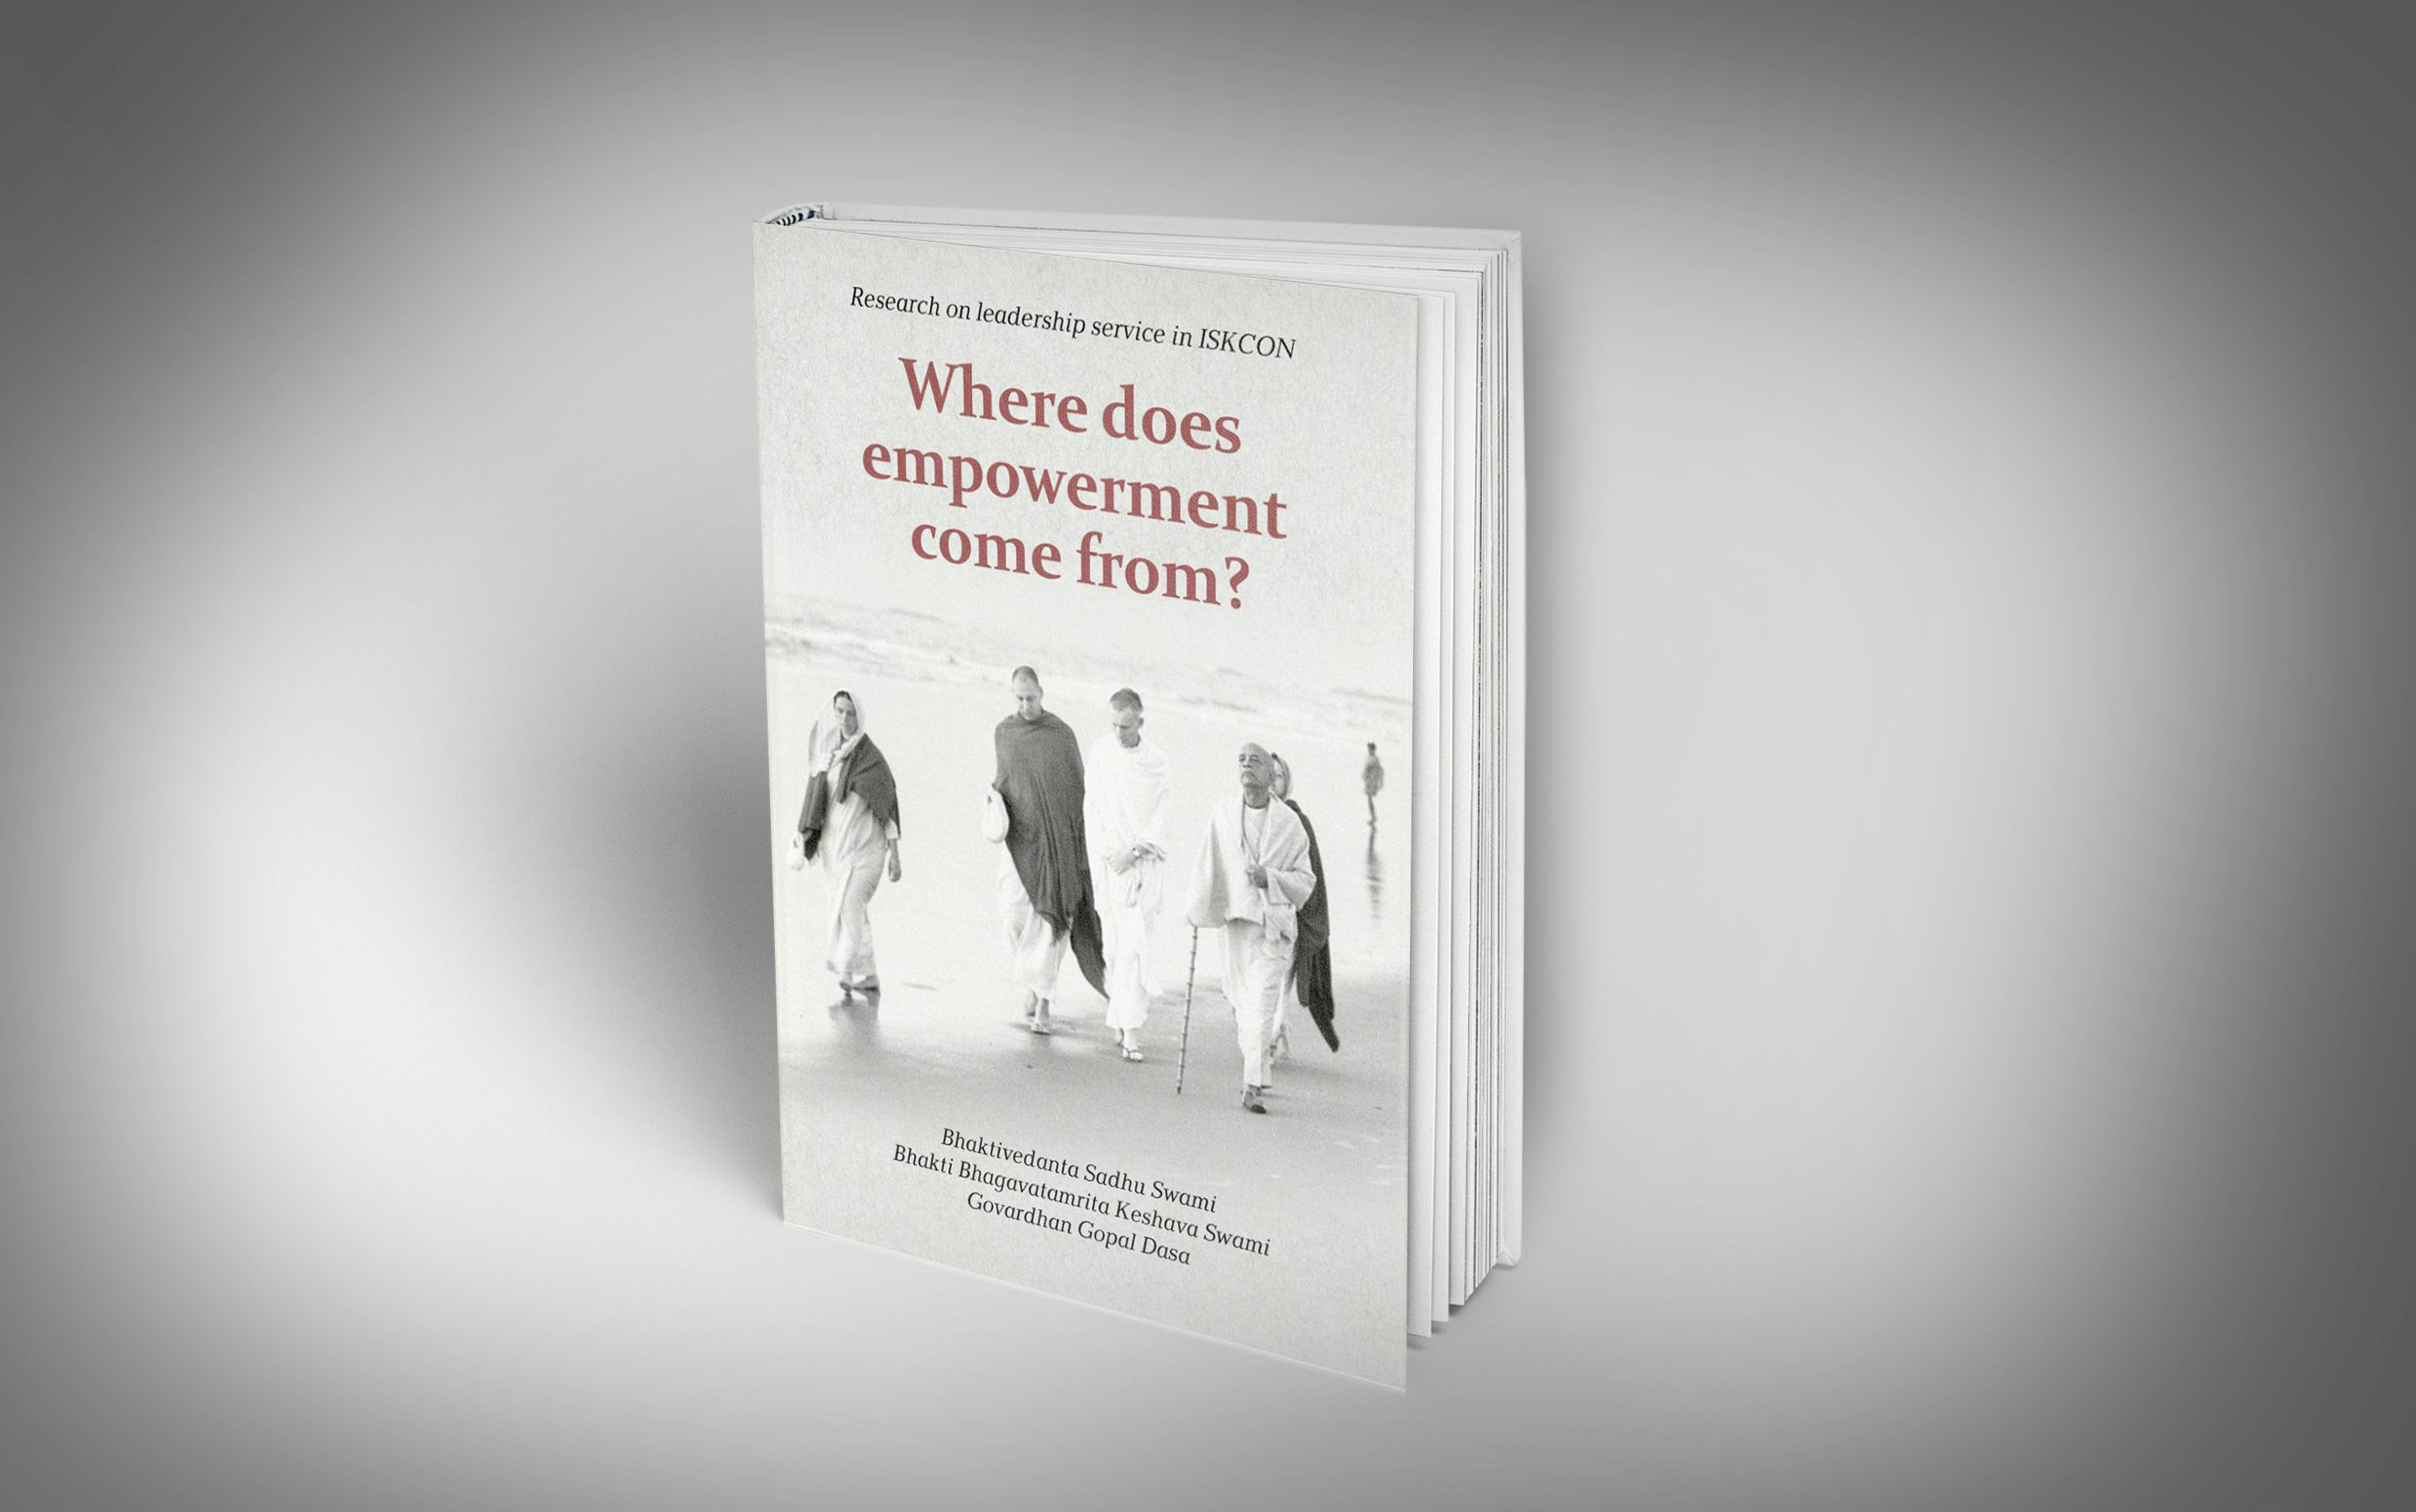 where does empowerment come from